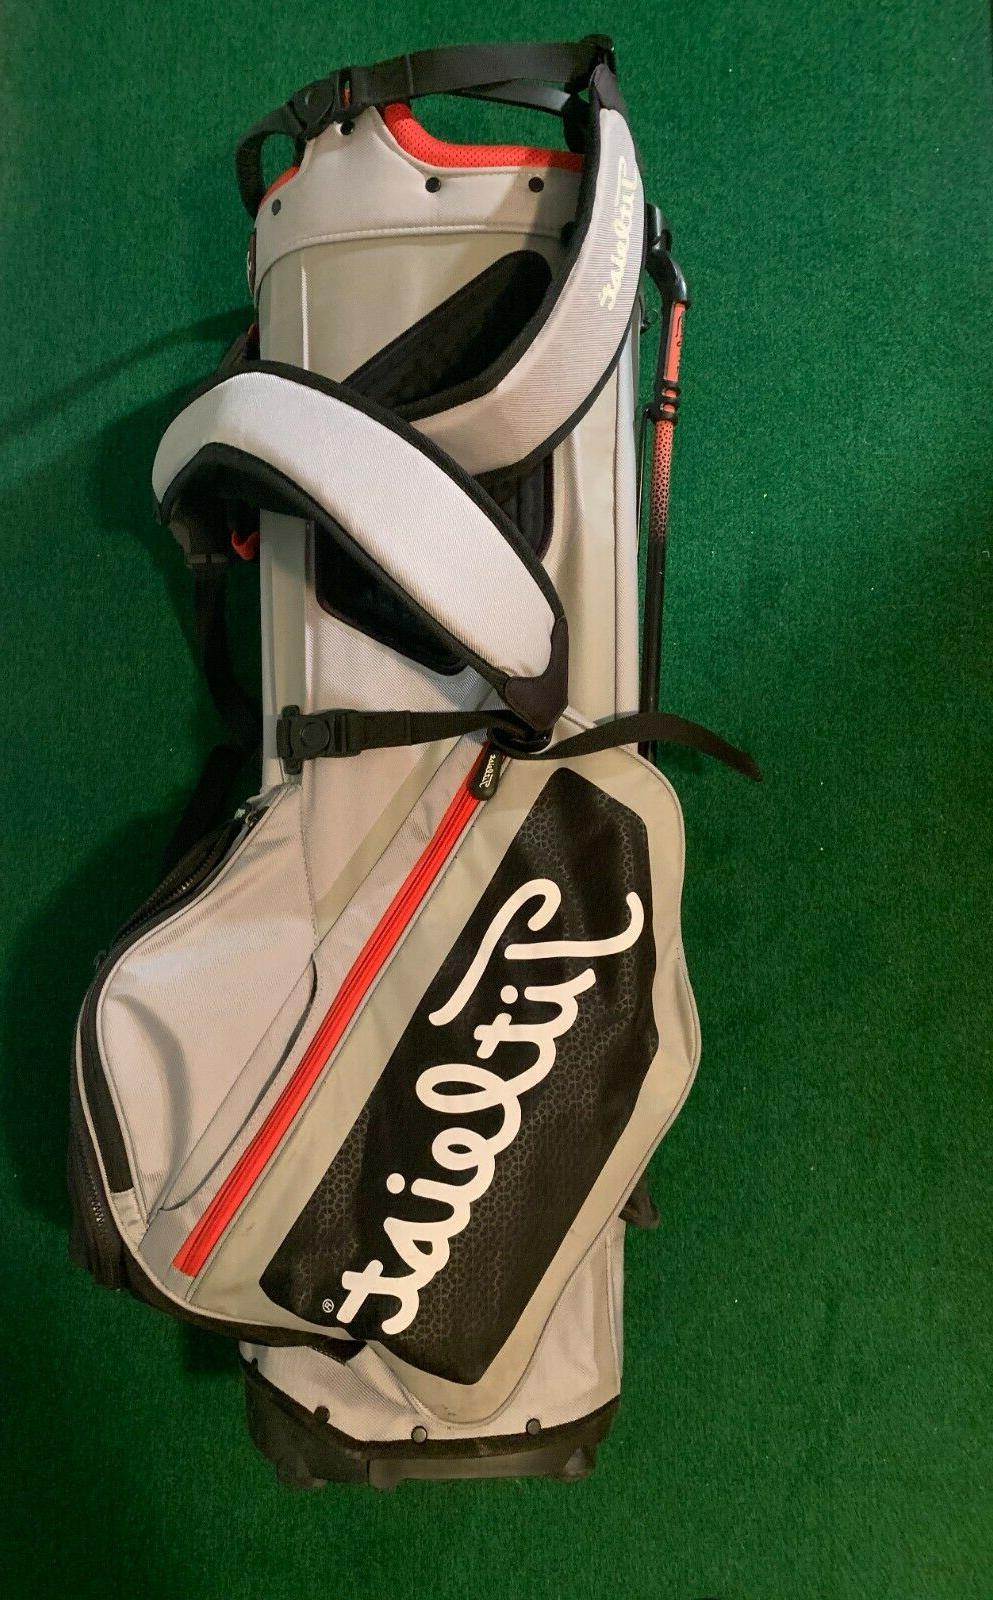 Titleist 14 Bag Used great well kept